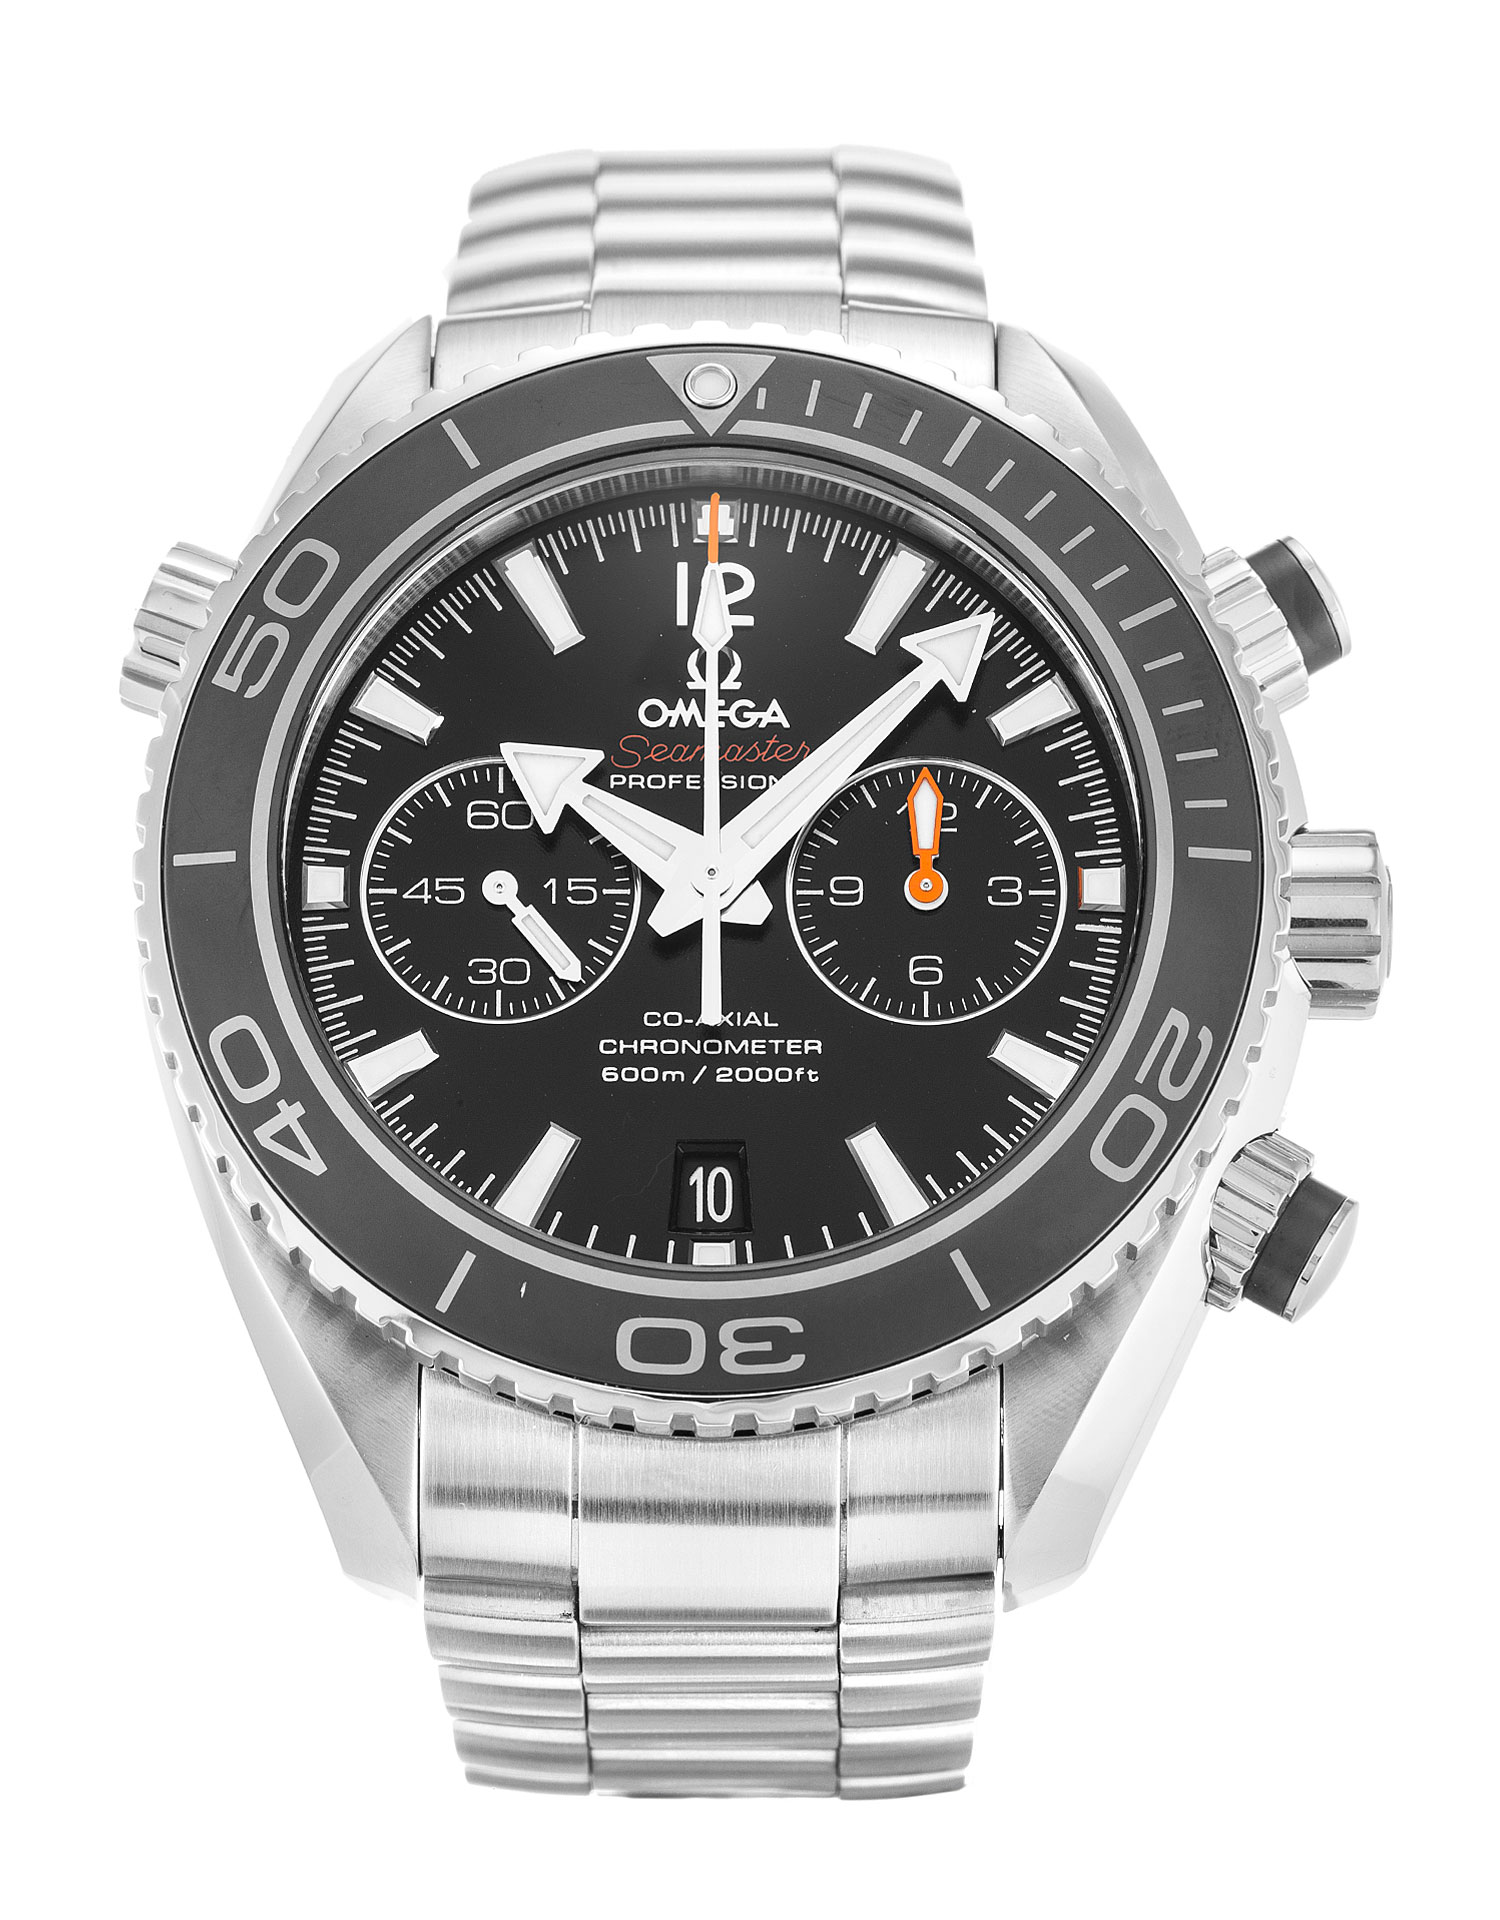 Omega Planet Ocean 232.30.46.51.01.003 Mens 45.5 Mm Steel Case Automatic Movement – iapac.to